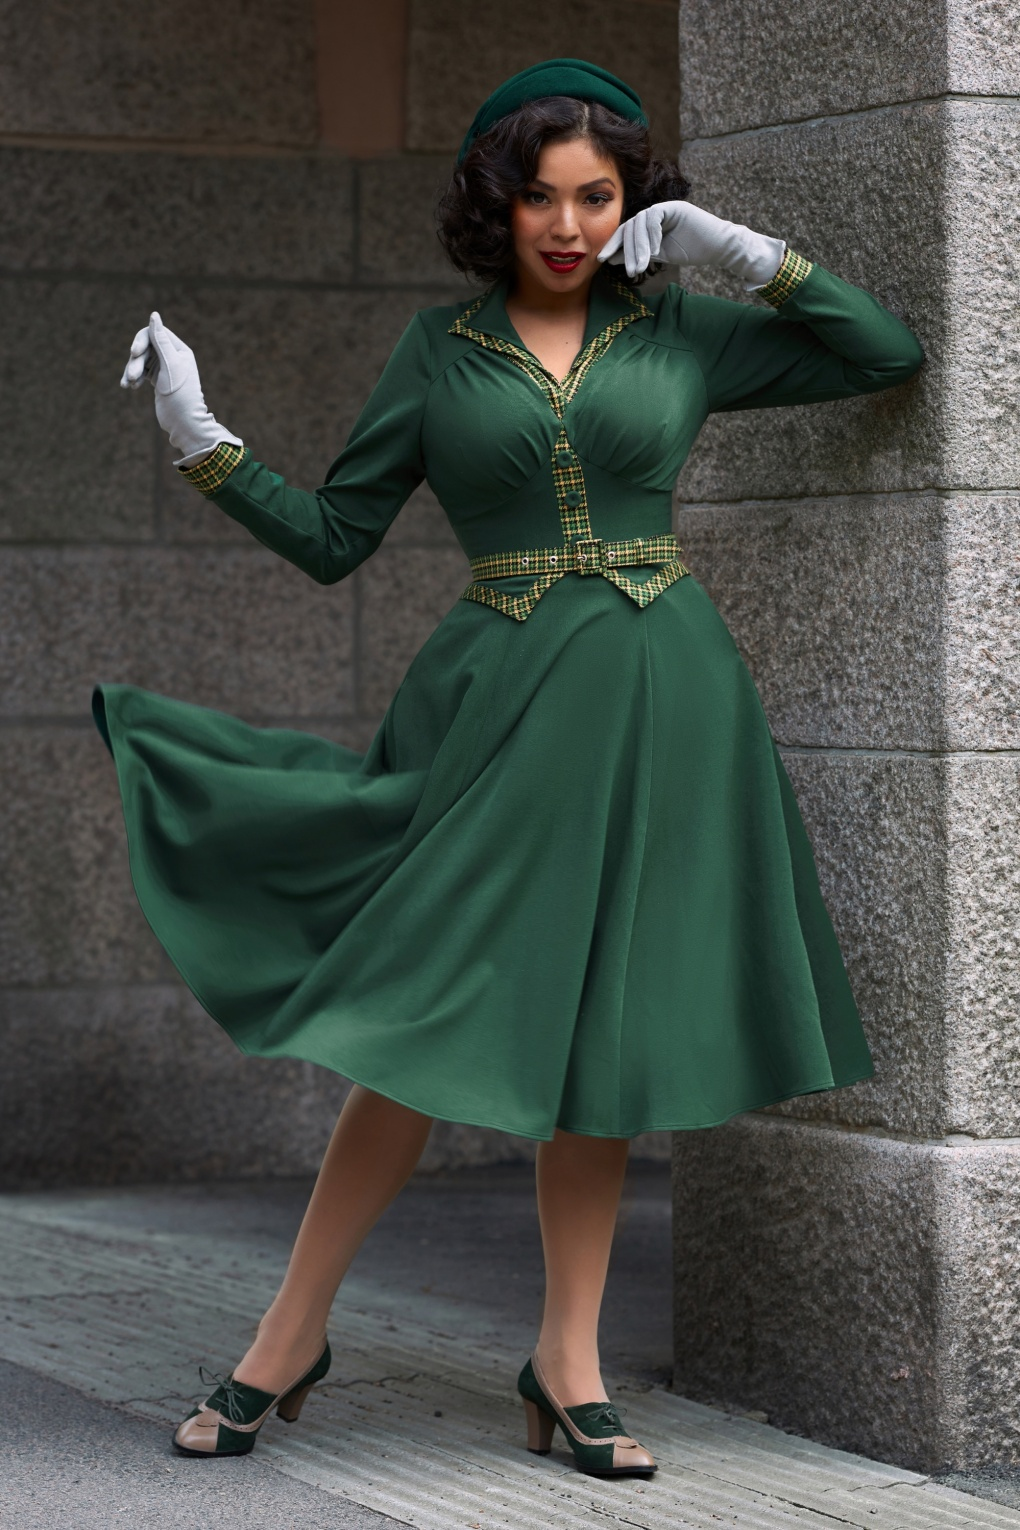 Pin Up Dresses | Pinup Clothing & Fashion 50s Meg Gia Long Sleeved Check Swing Dress in Green £113.11 AT vintagedancer.com